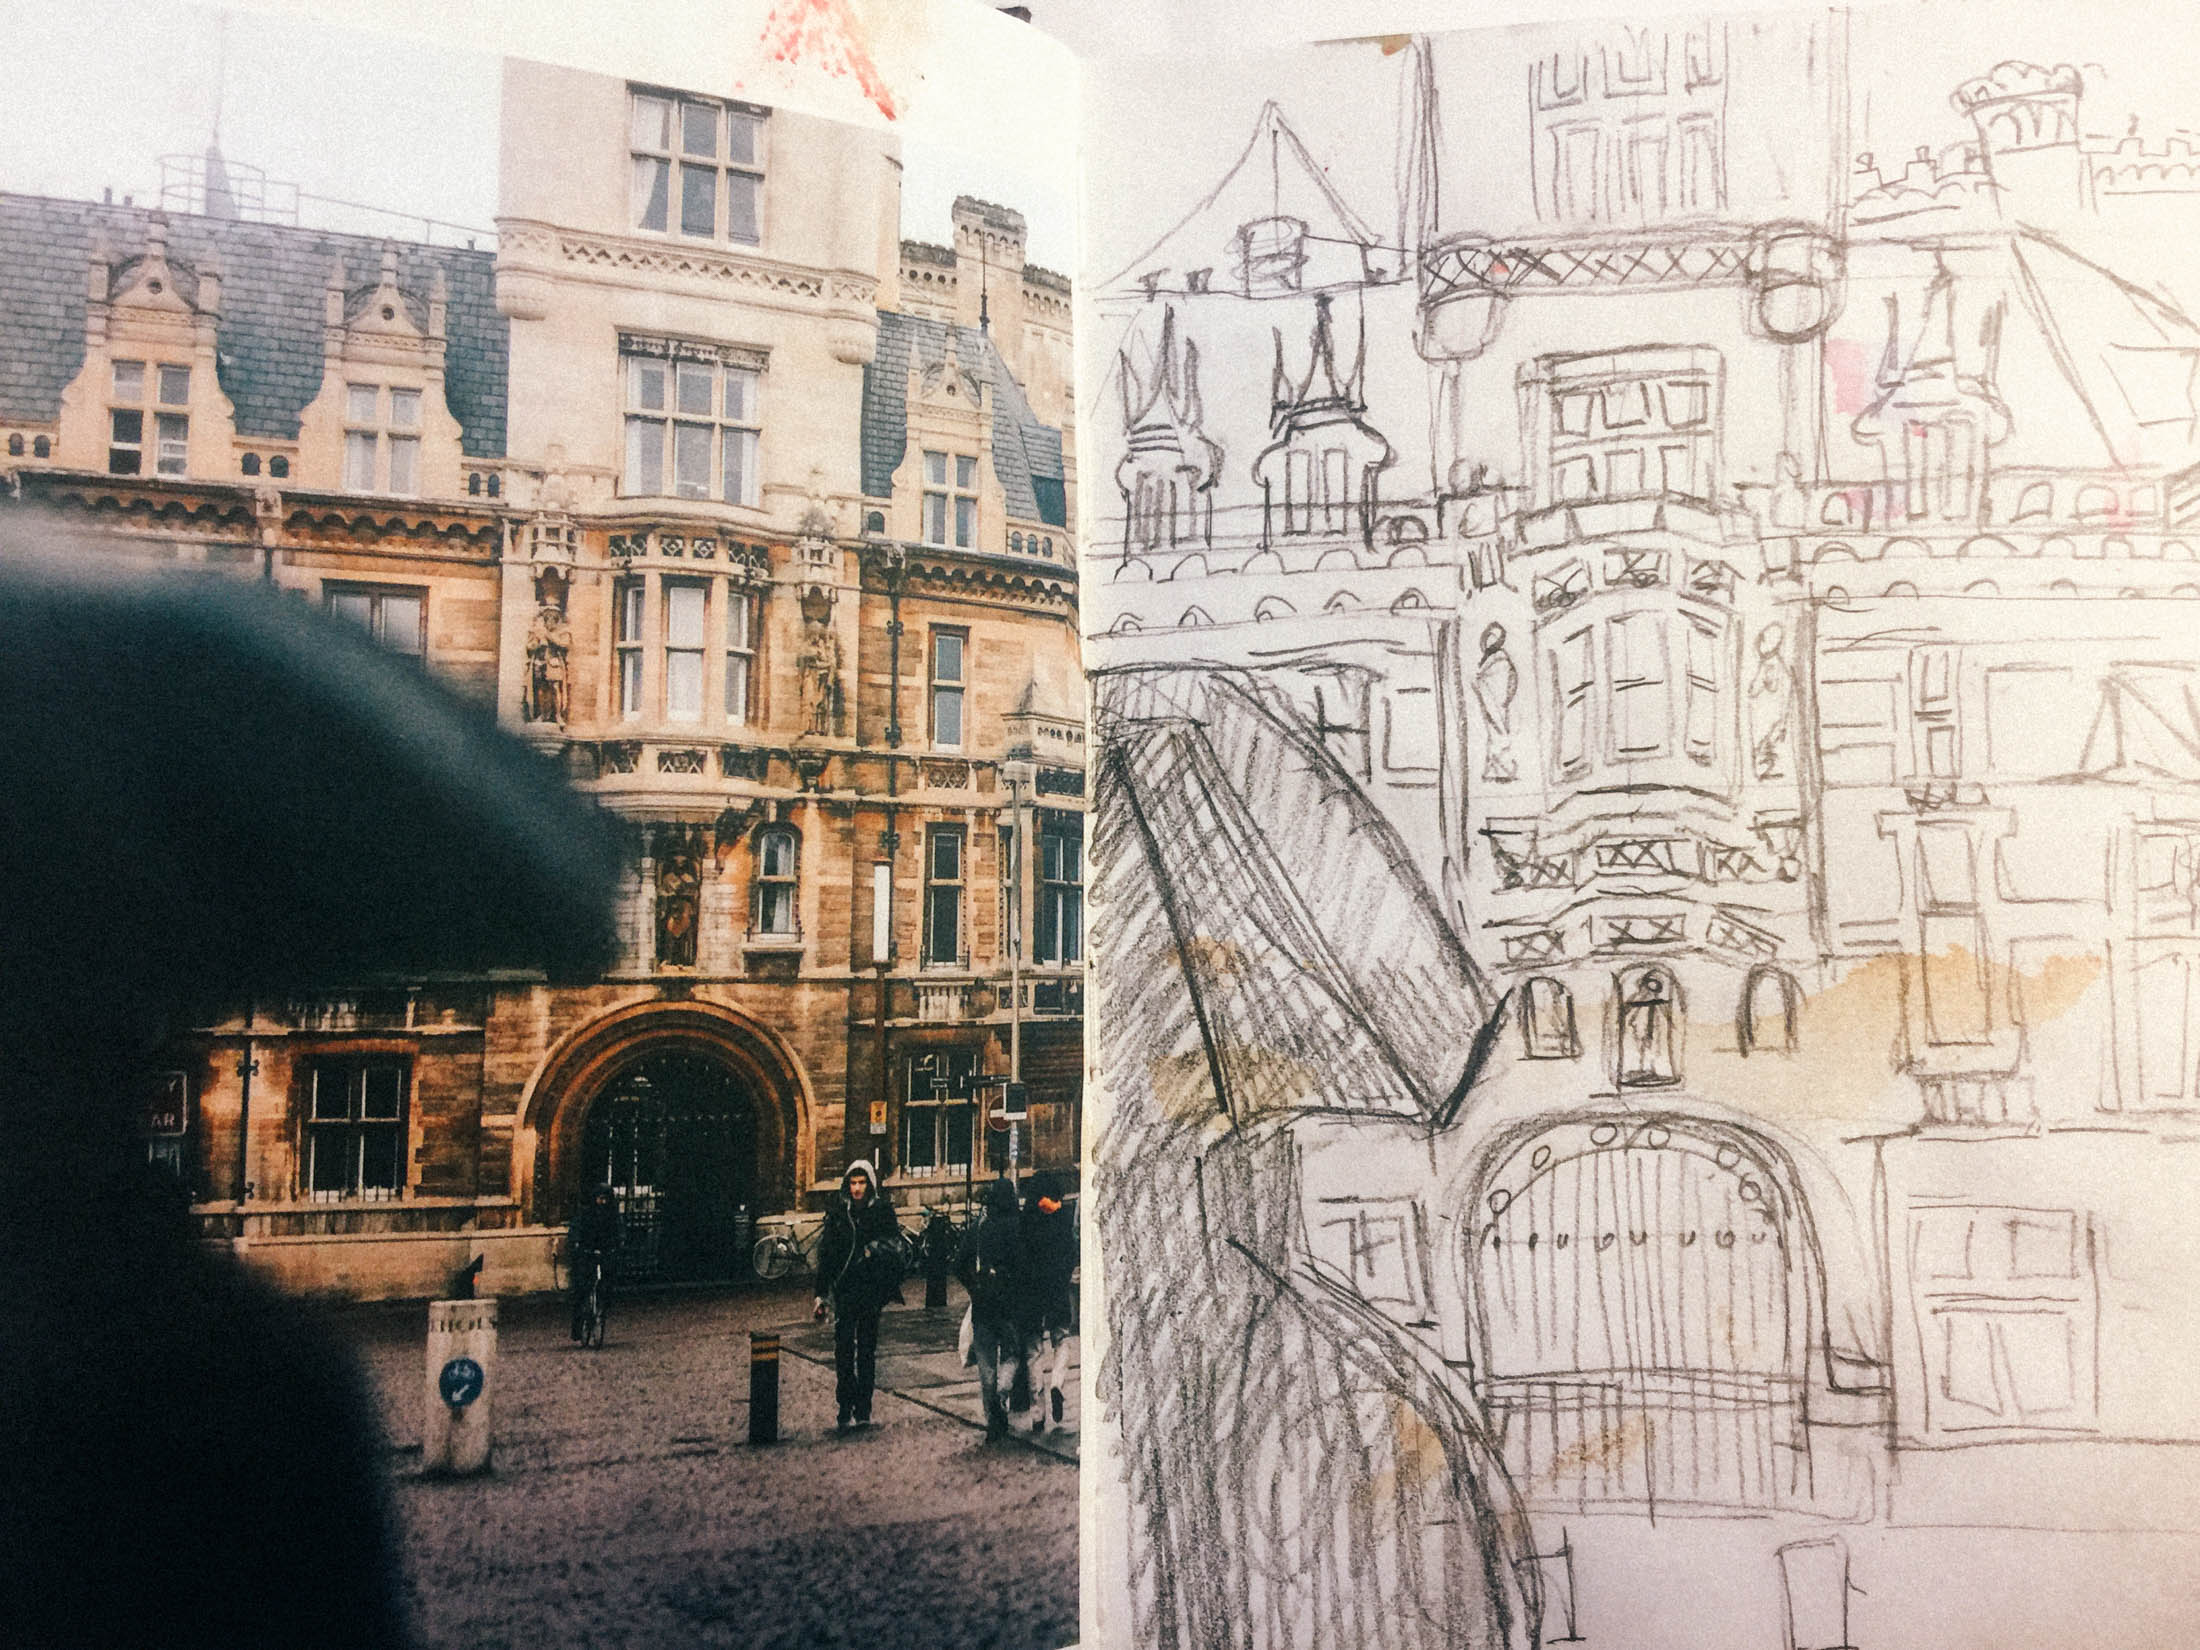 drawing & sketching along with photography